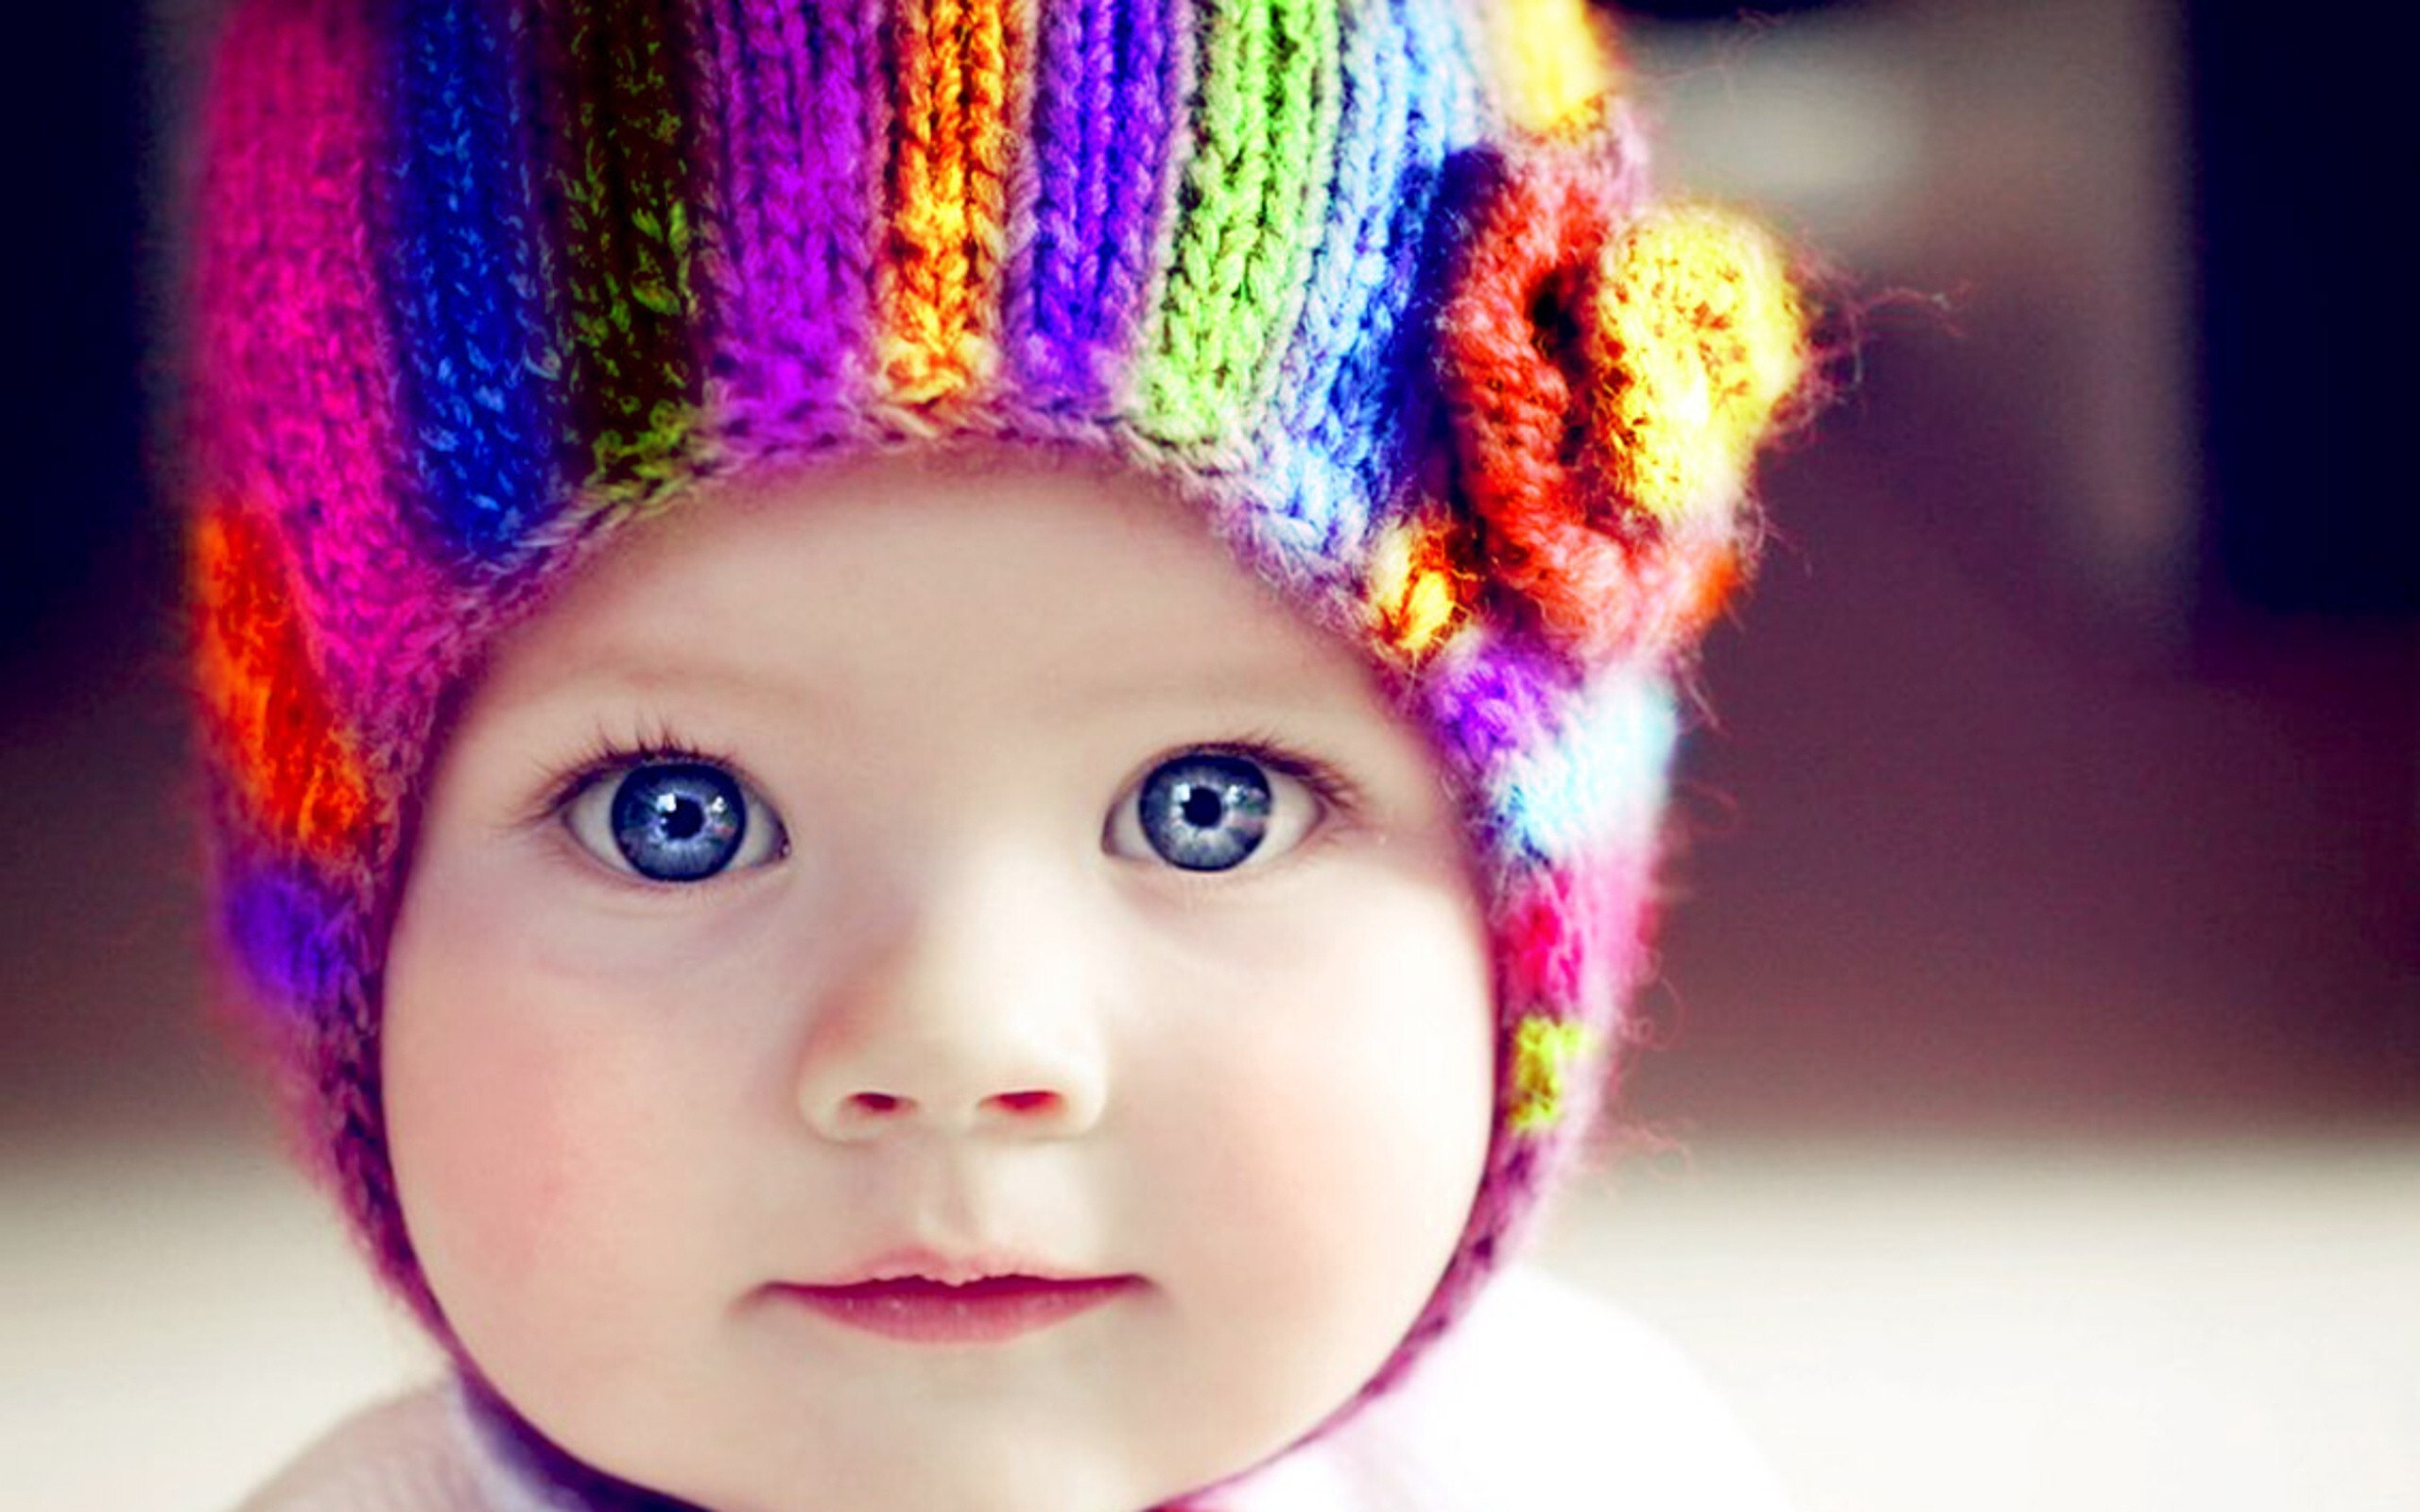 cute colorful baby with blue eye wallpapers | hd wallpapers